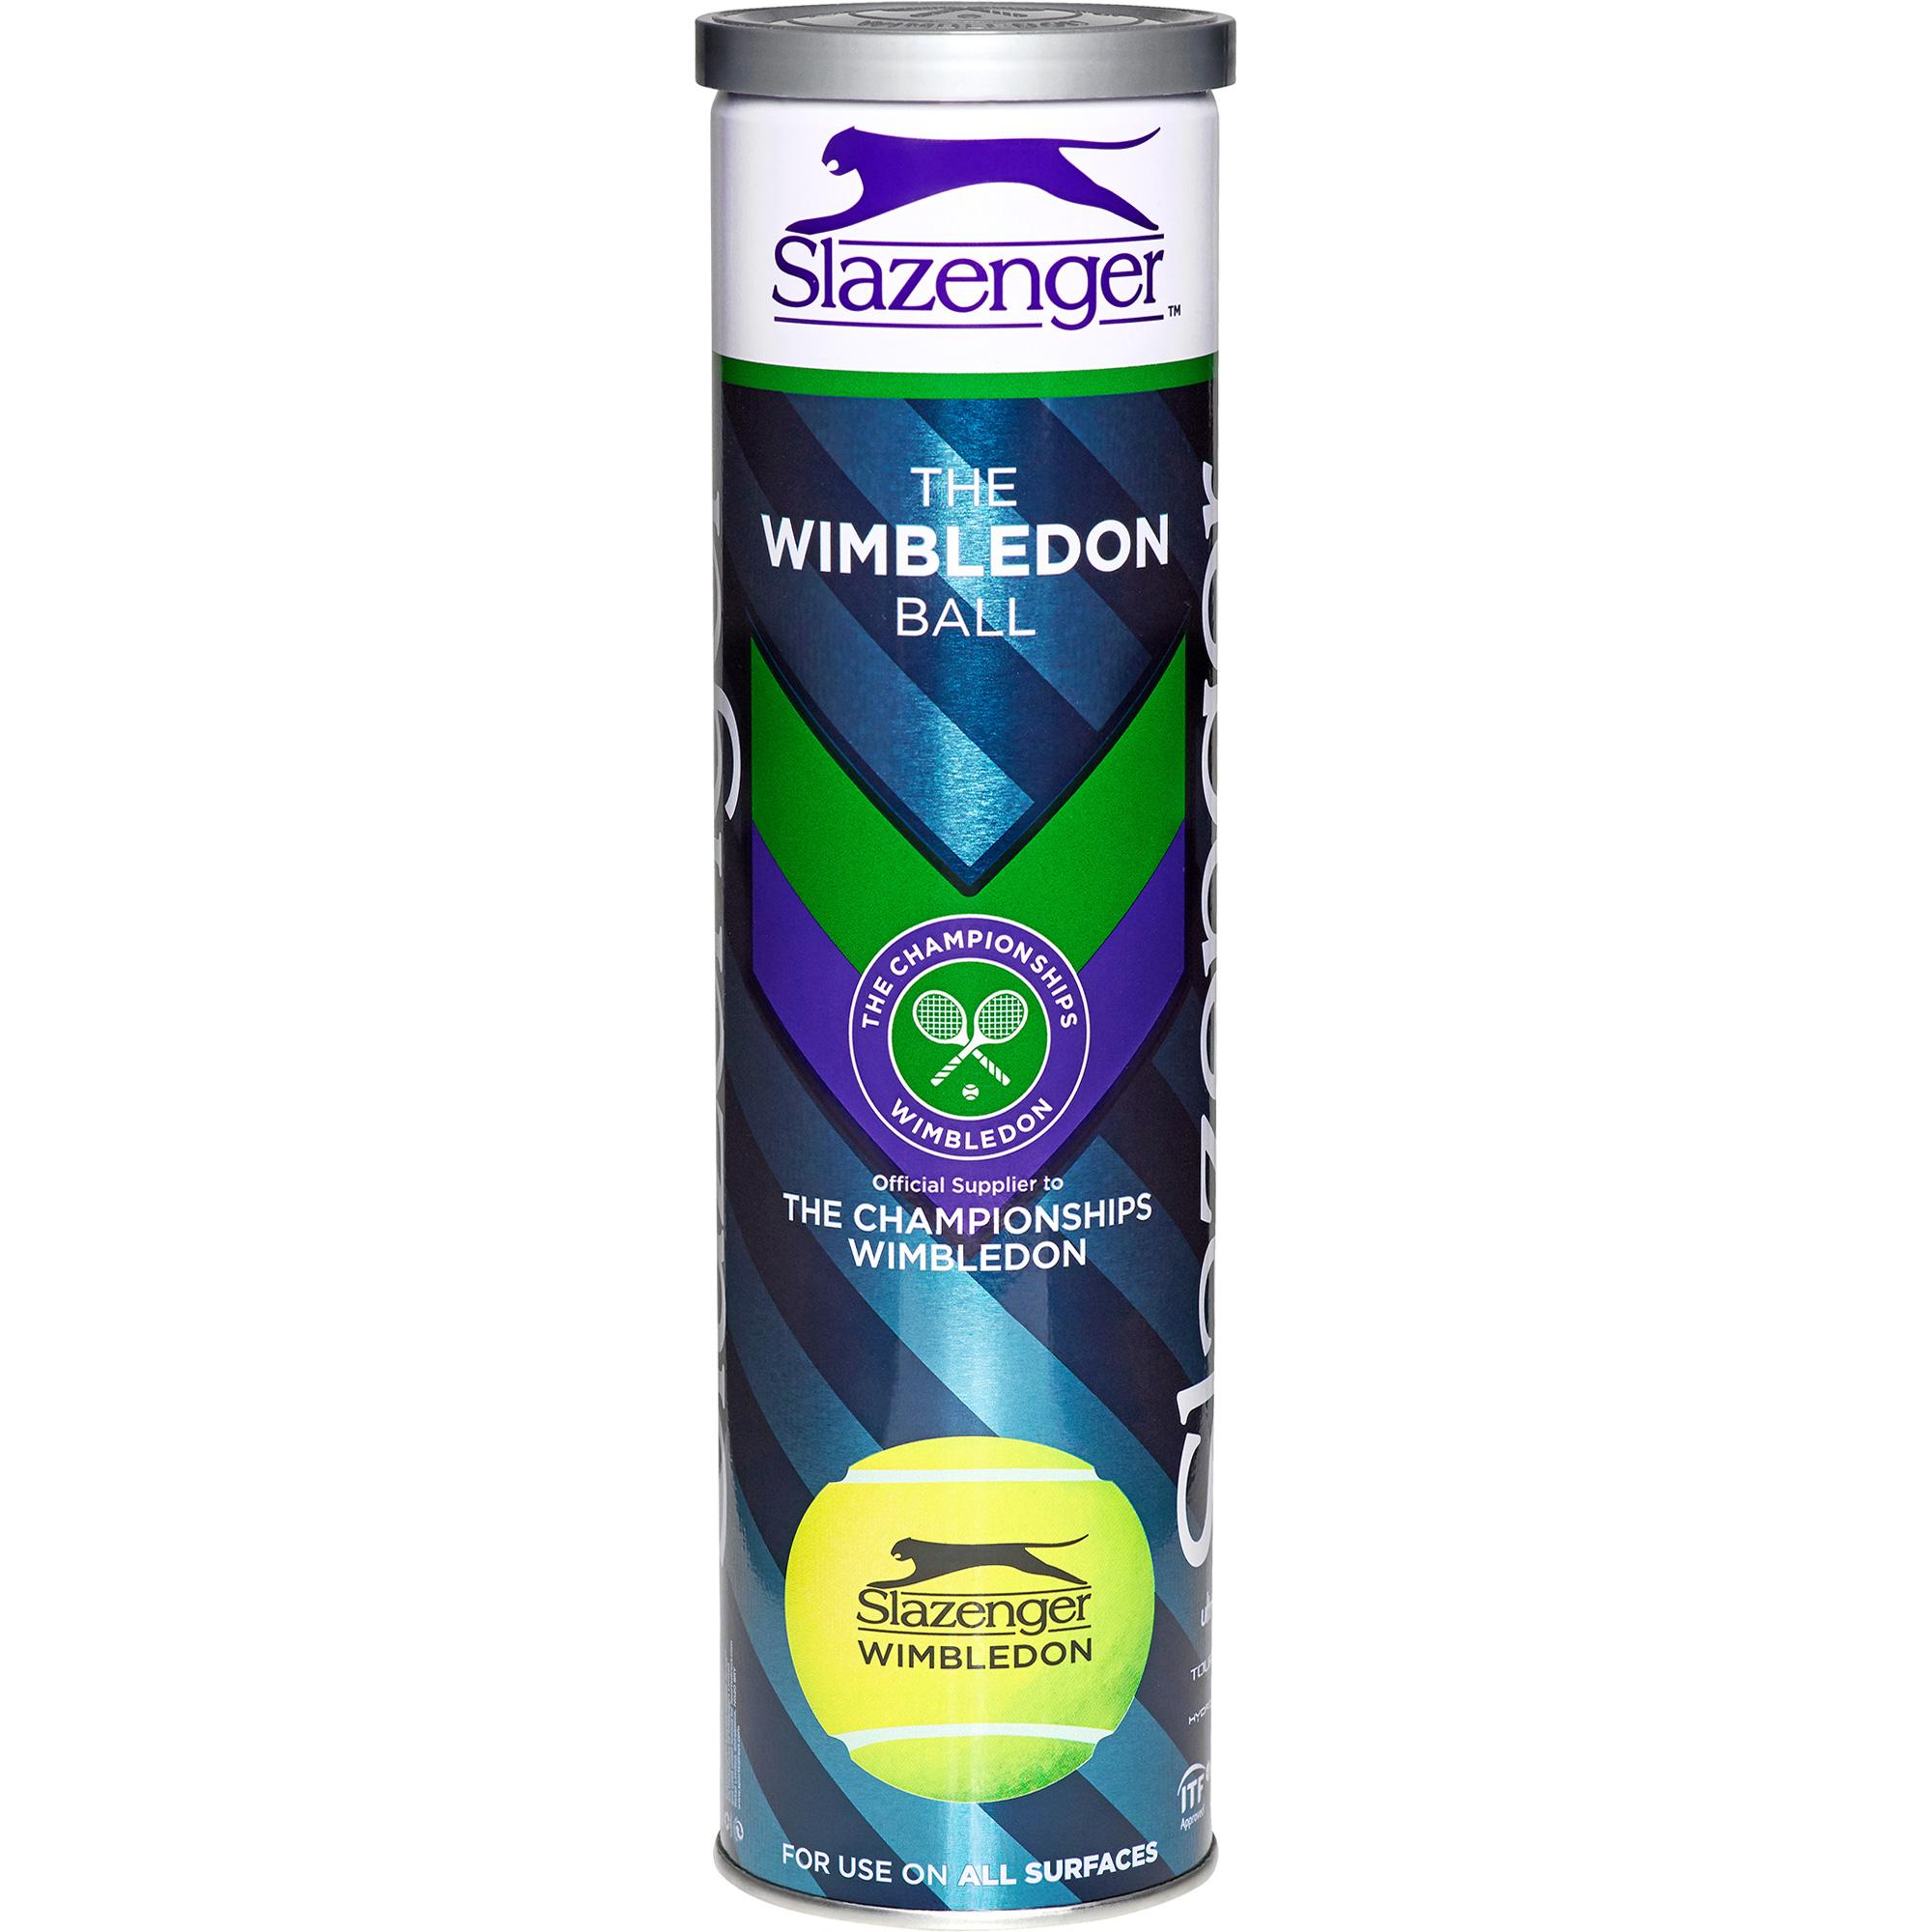 Slazenger Wimbledon Tennis Balls (4 Ball Can) Quantity Deals